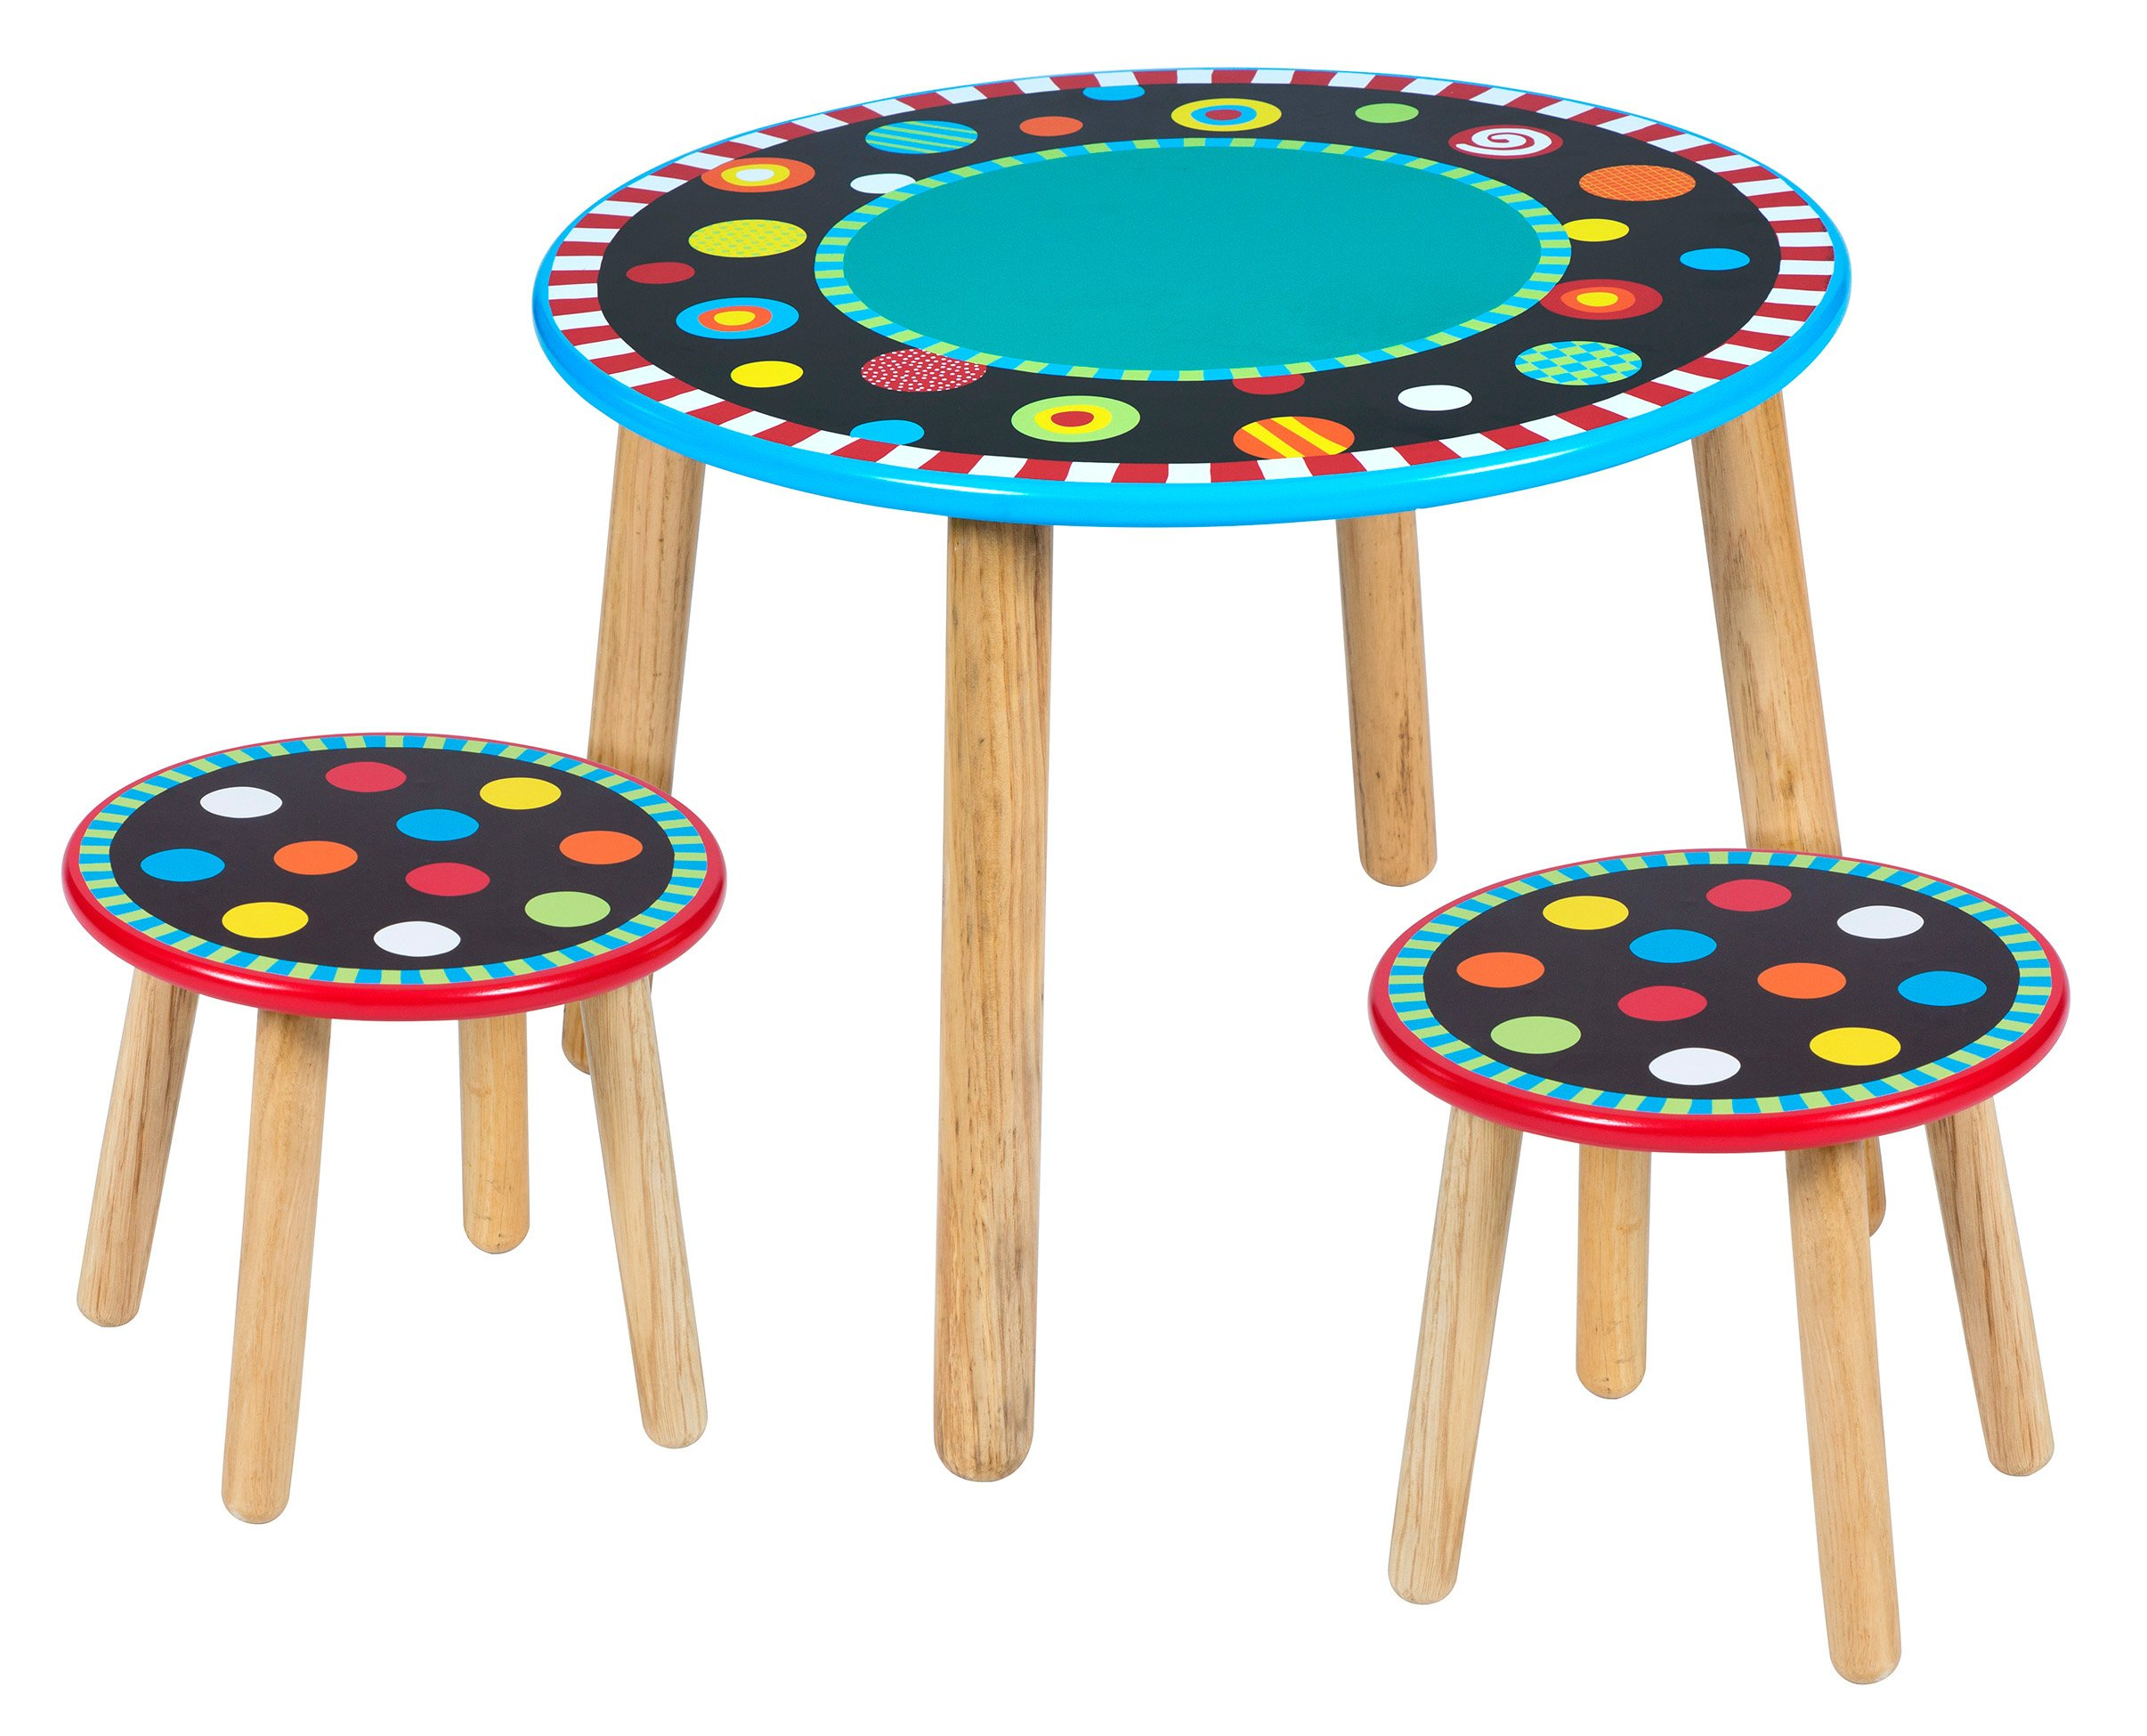 ALEX Toys Artist Studio My First Table & 2 Stools by ALEX Toys